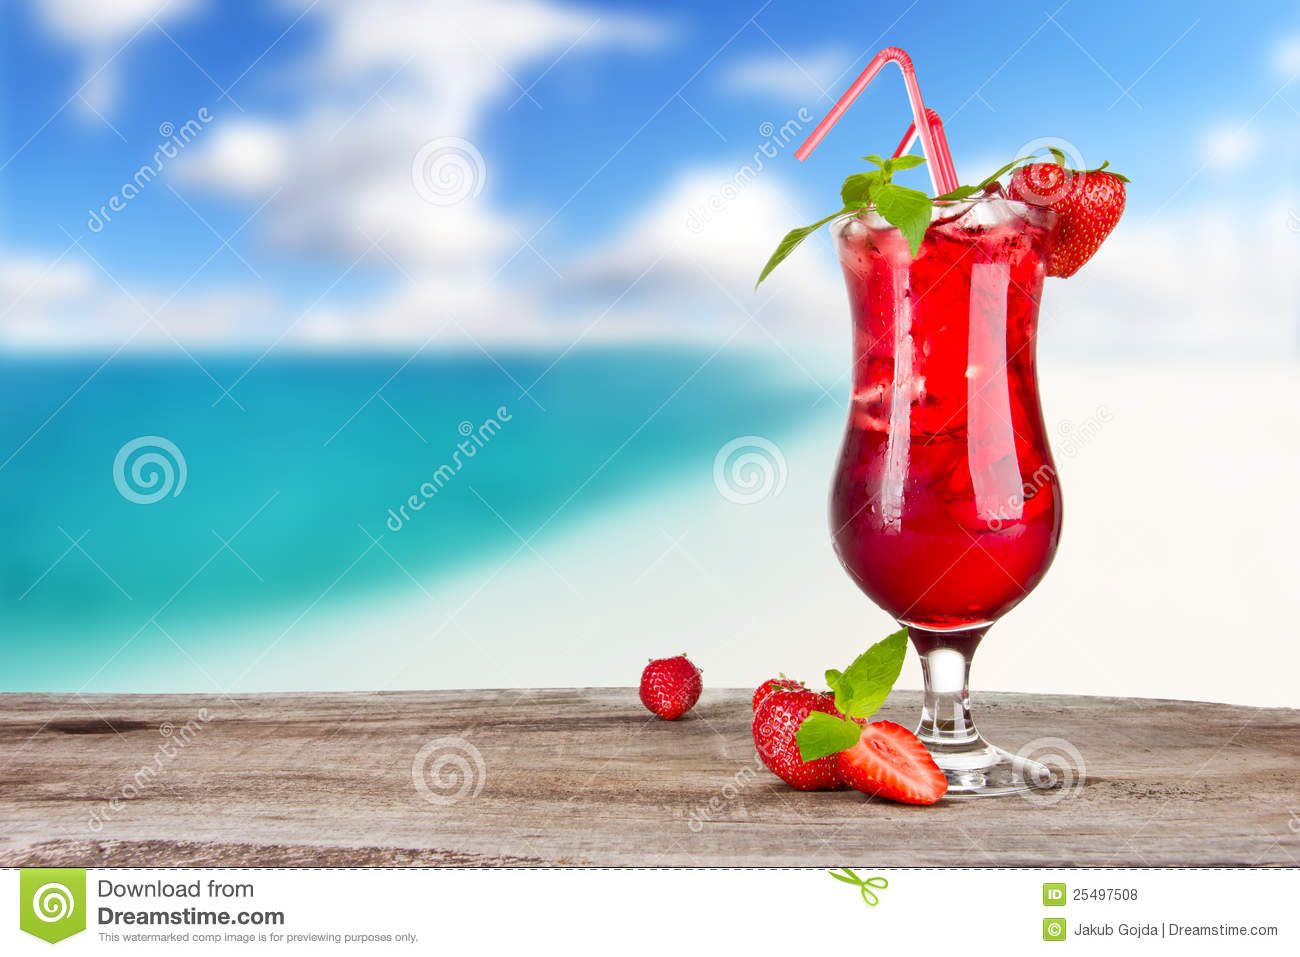 3d Fruit Wallpaper Summer Cocktail Royalty Free Stock Photos Image 25497508